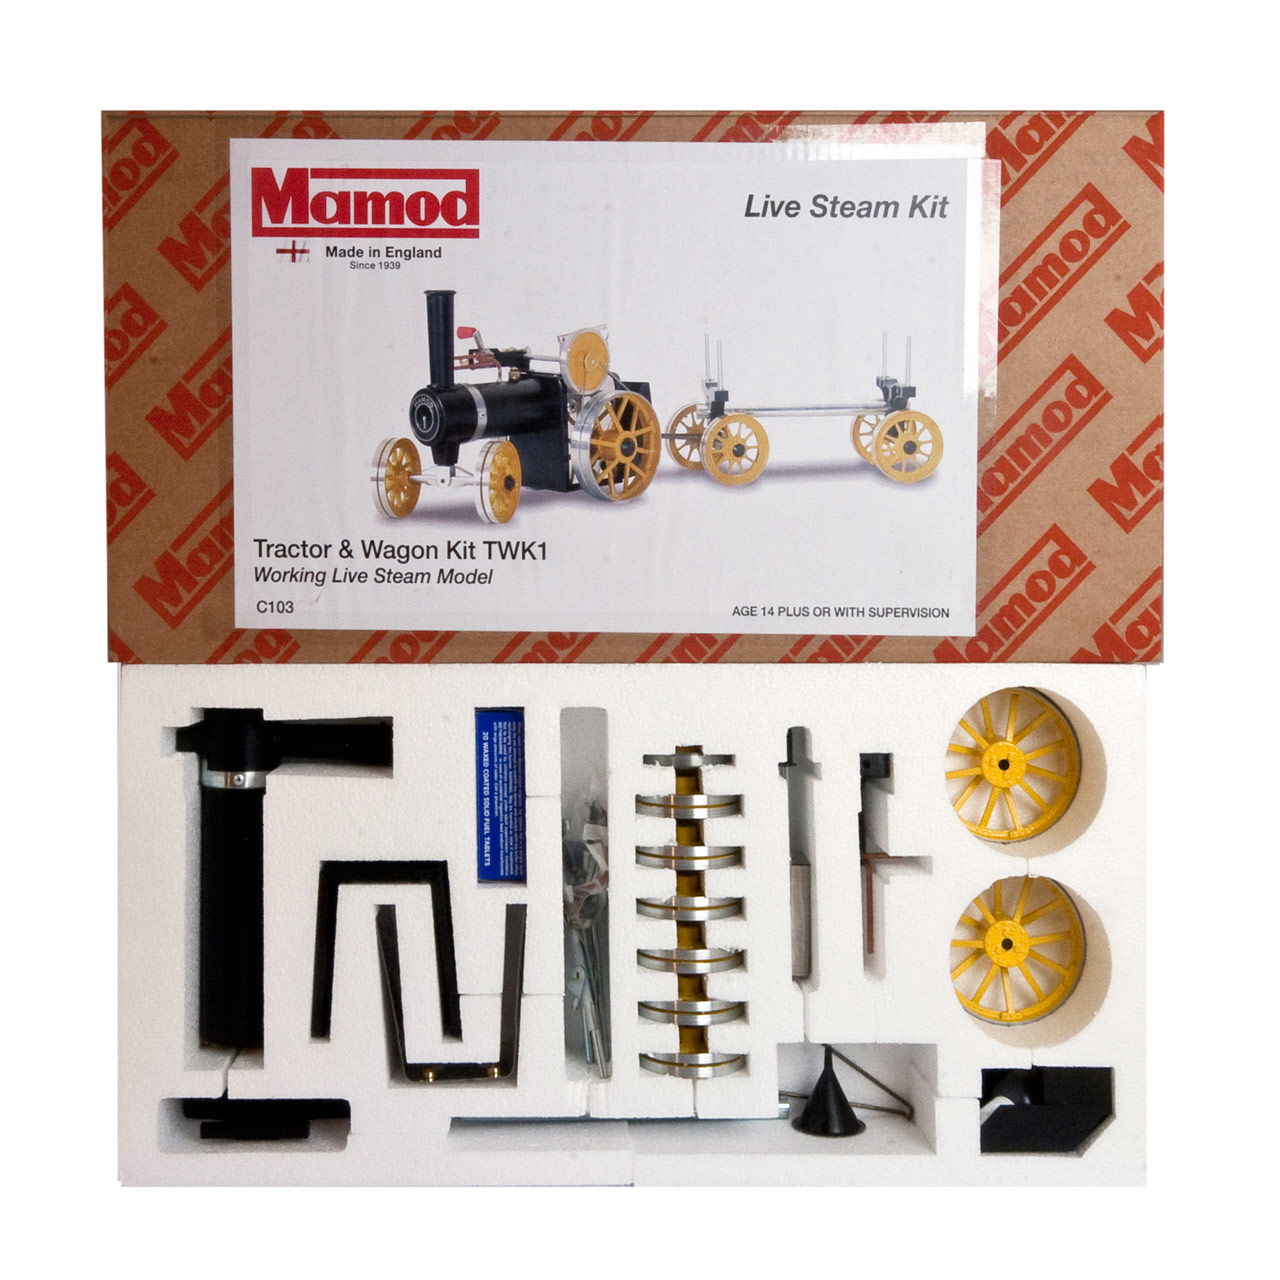 Mamod Live Steam Engines - Mamod Tractor and Wagon Kit